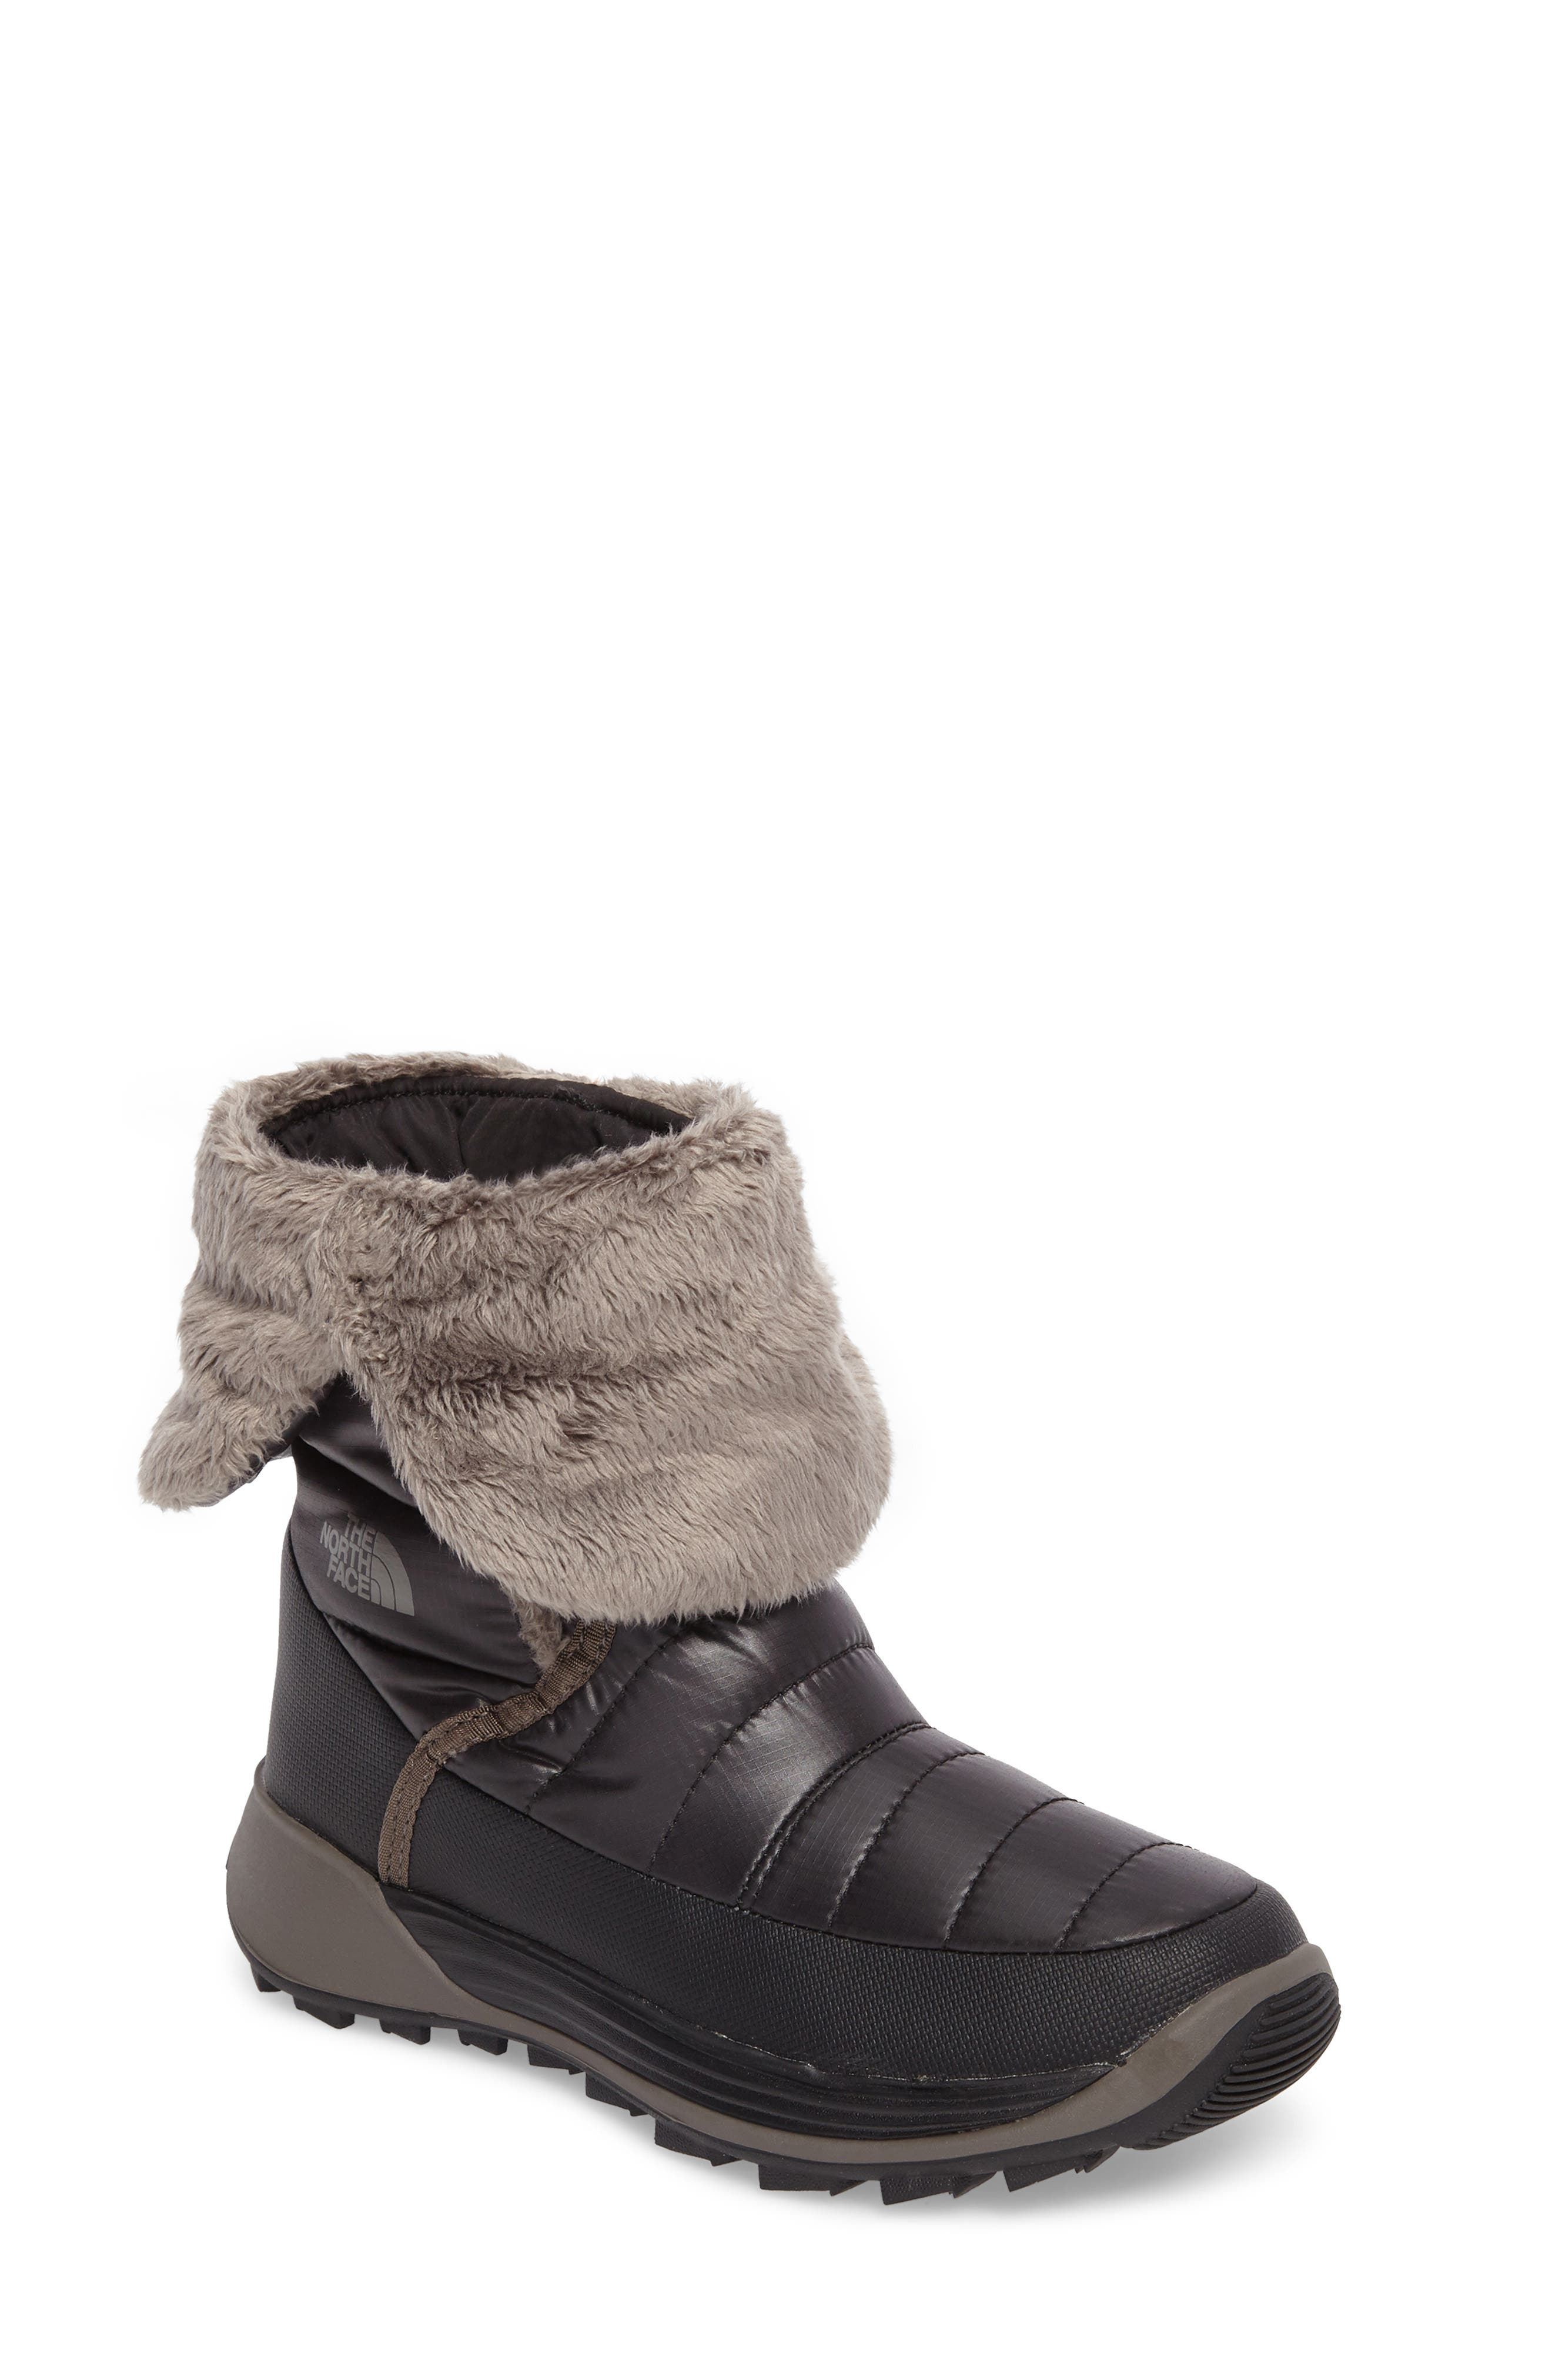 THE NORTH FACE Amore II Water-Resistant Winter Boot, Main, color, TNF BLACK/ DARK GULL GREY